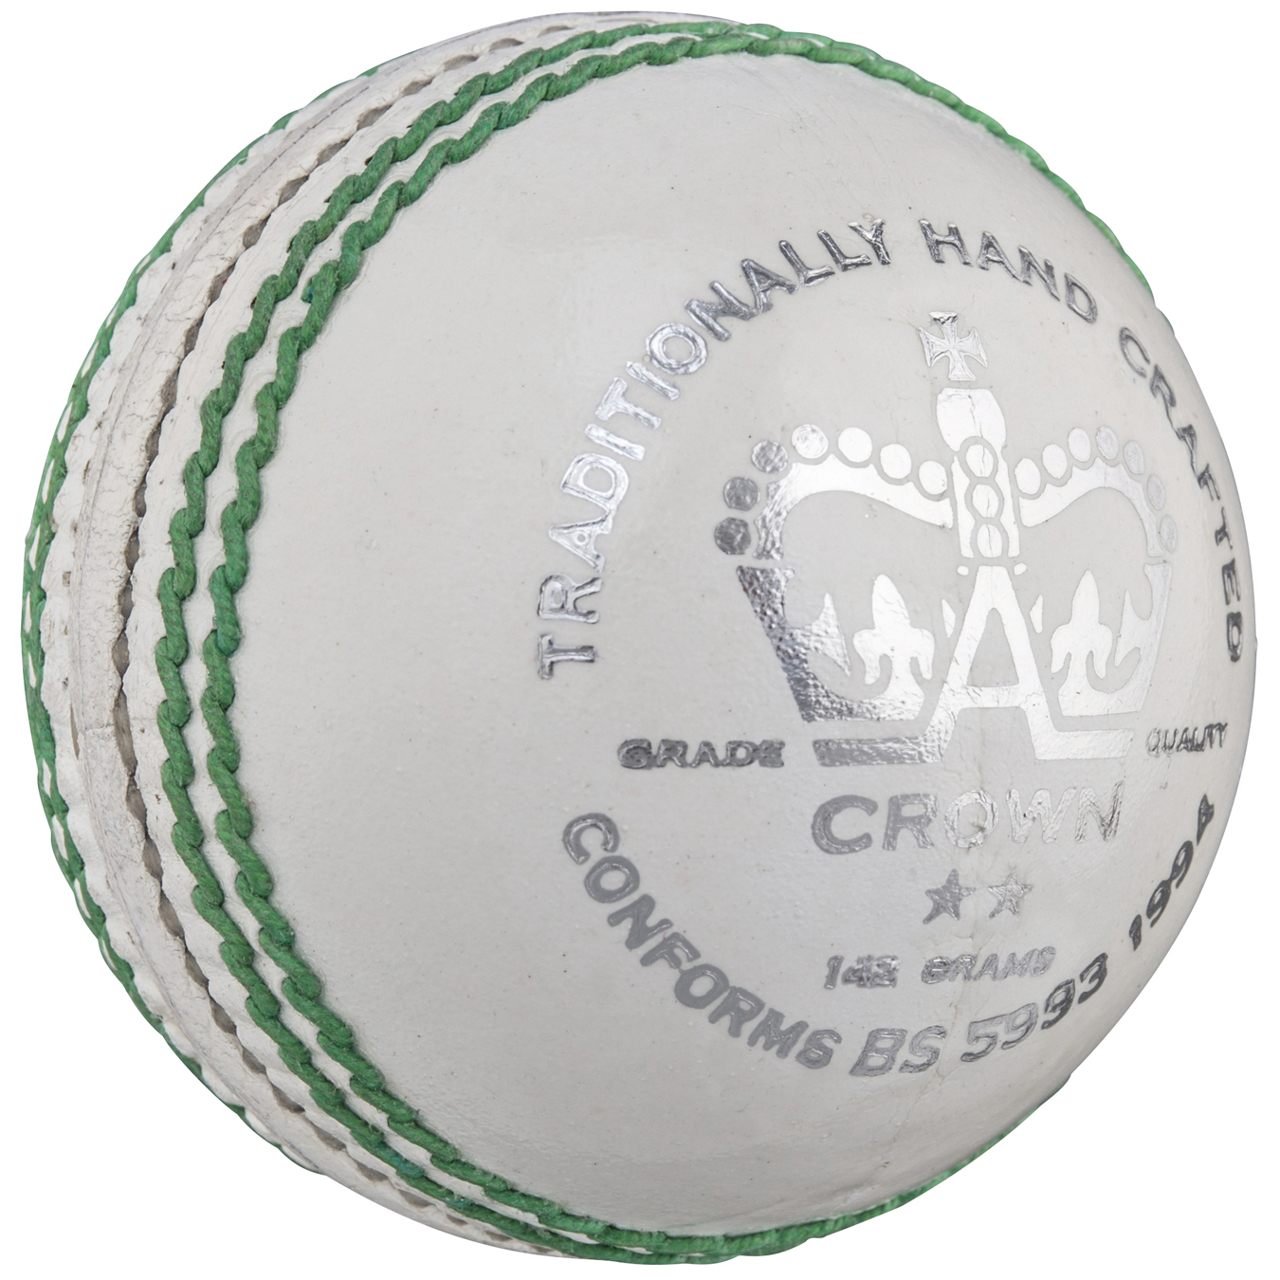 Picture of GN BALL CROWN 2 STAR 156g WHITE